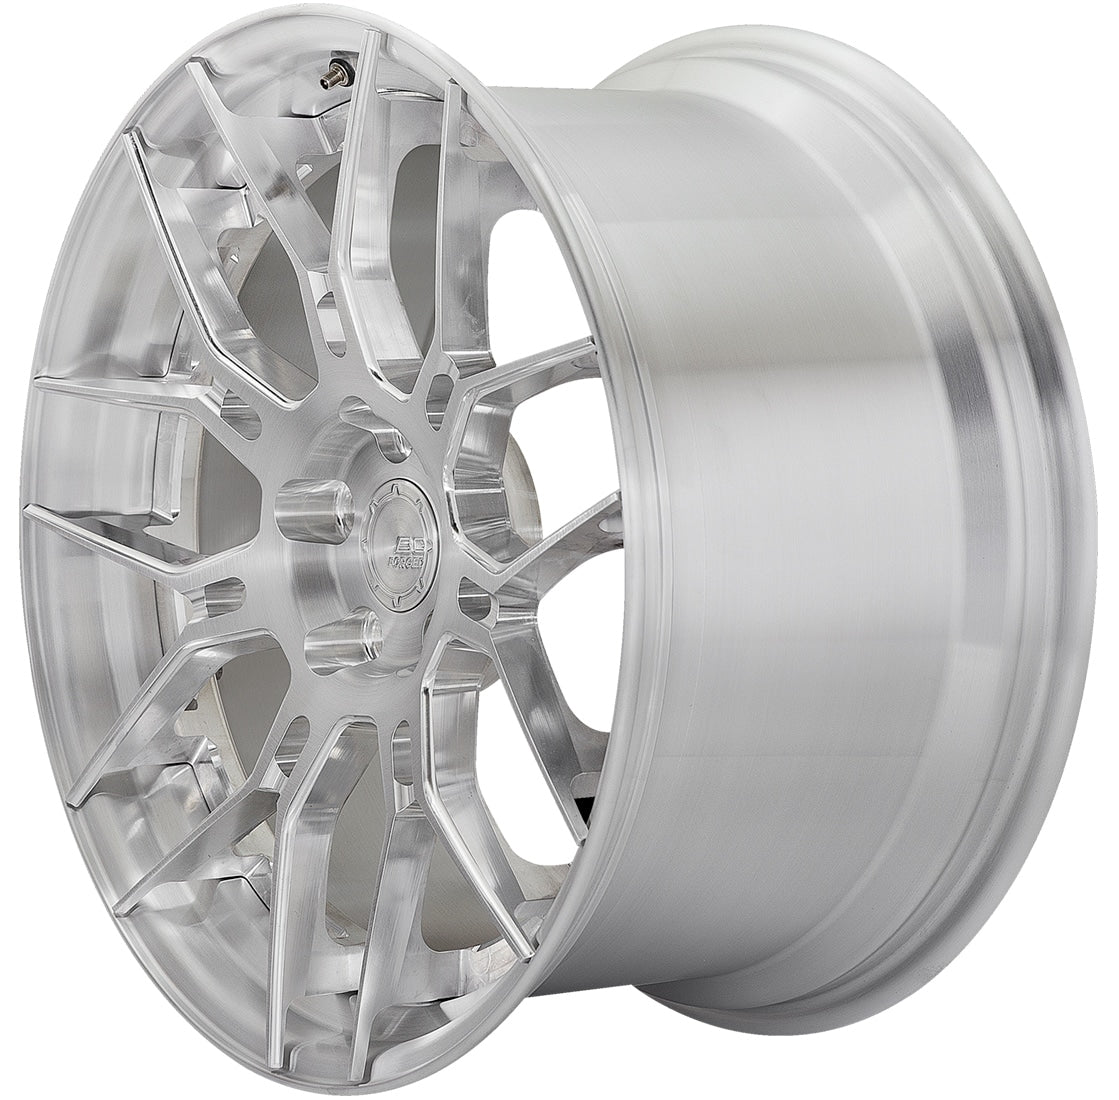 BC Forged HCA167 - 2PC Modular Wheels - MODE Auto Concepts